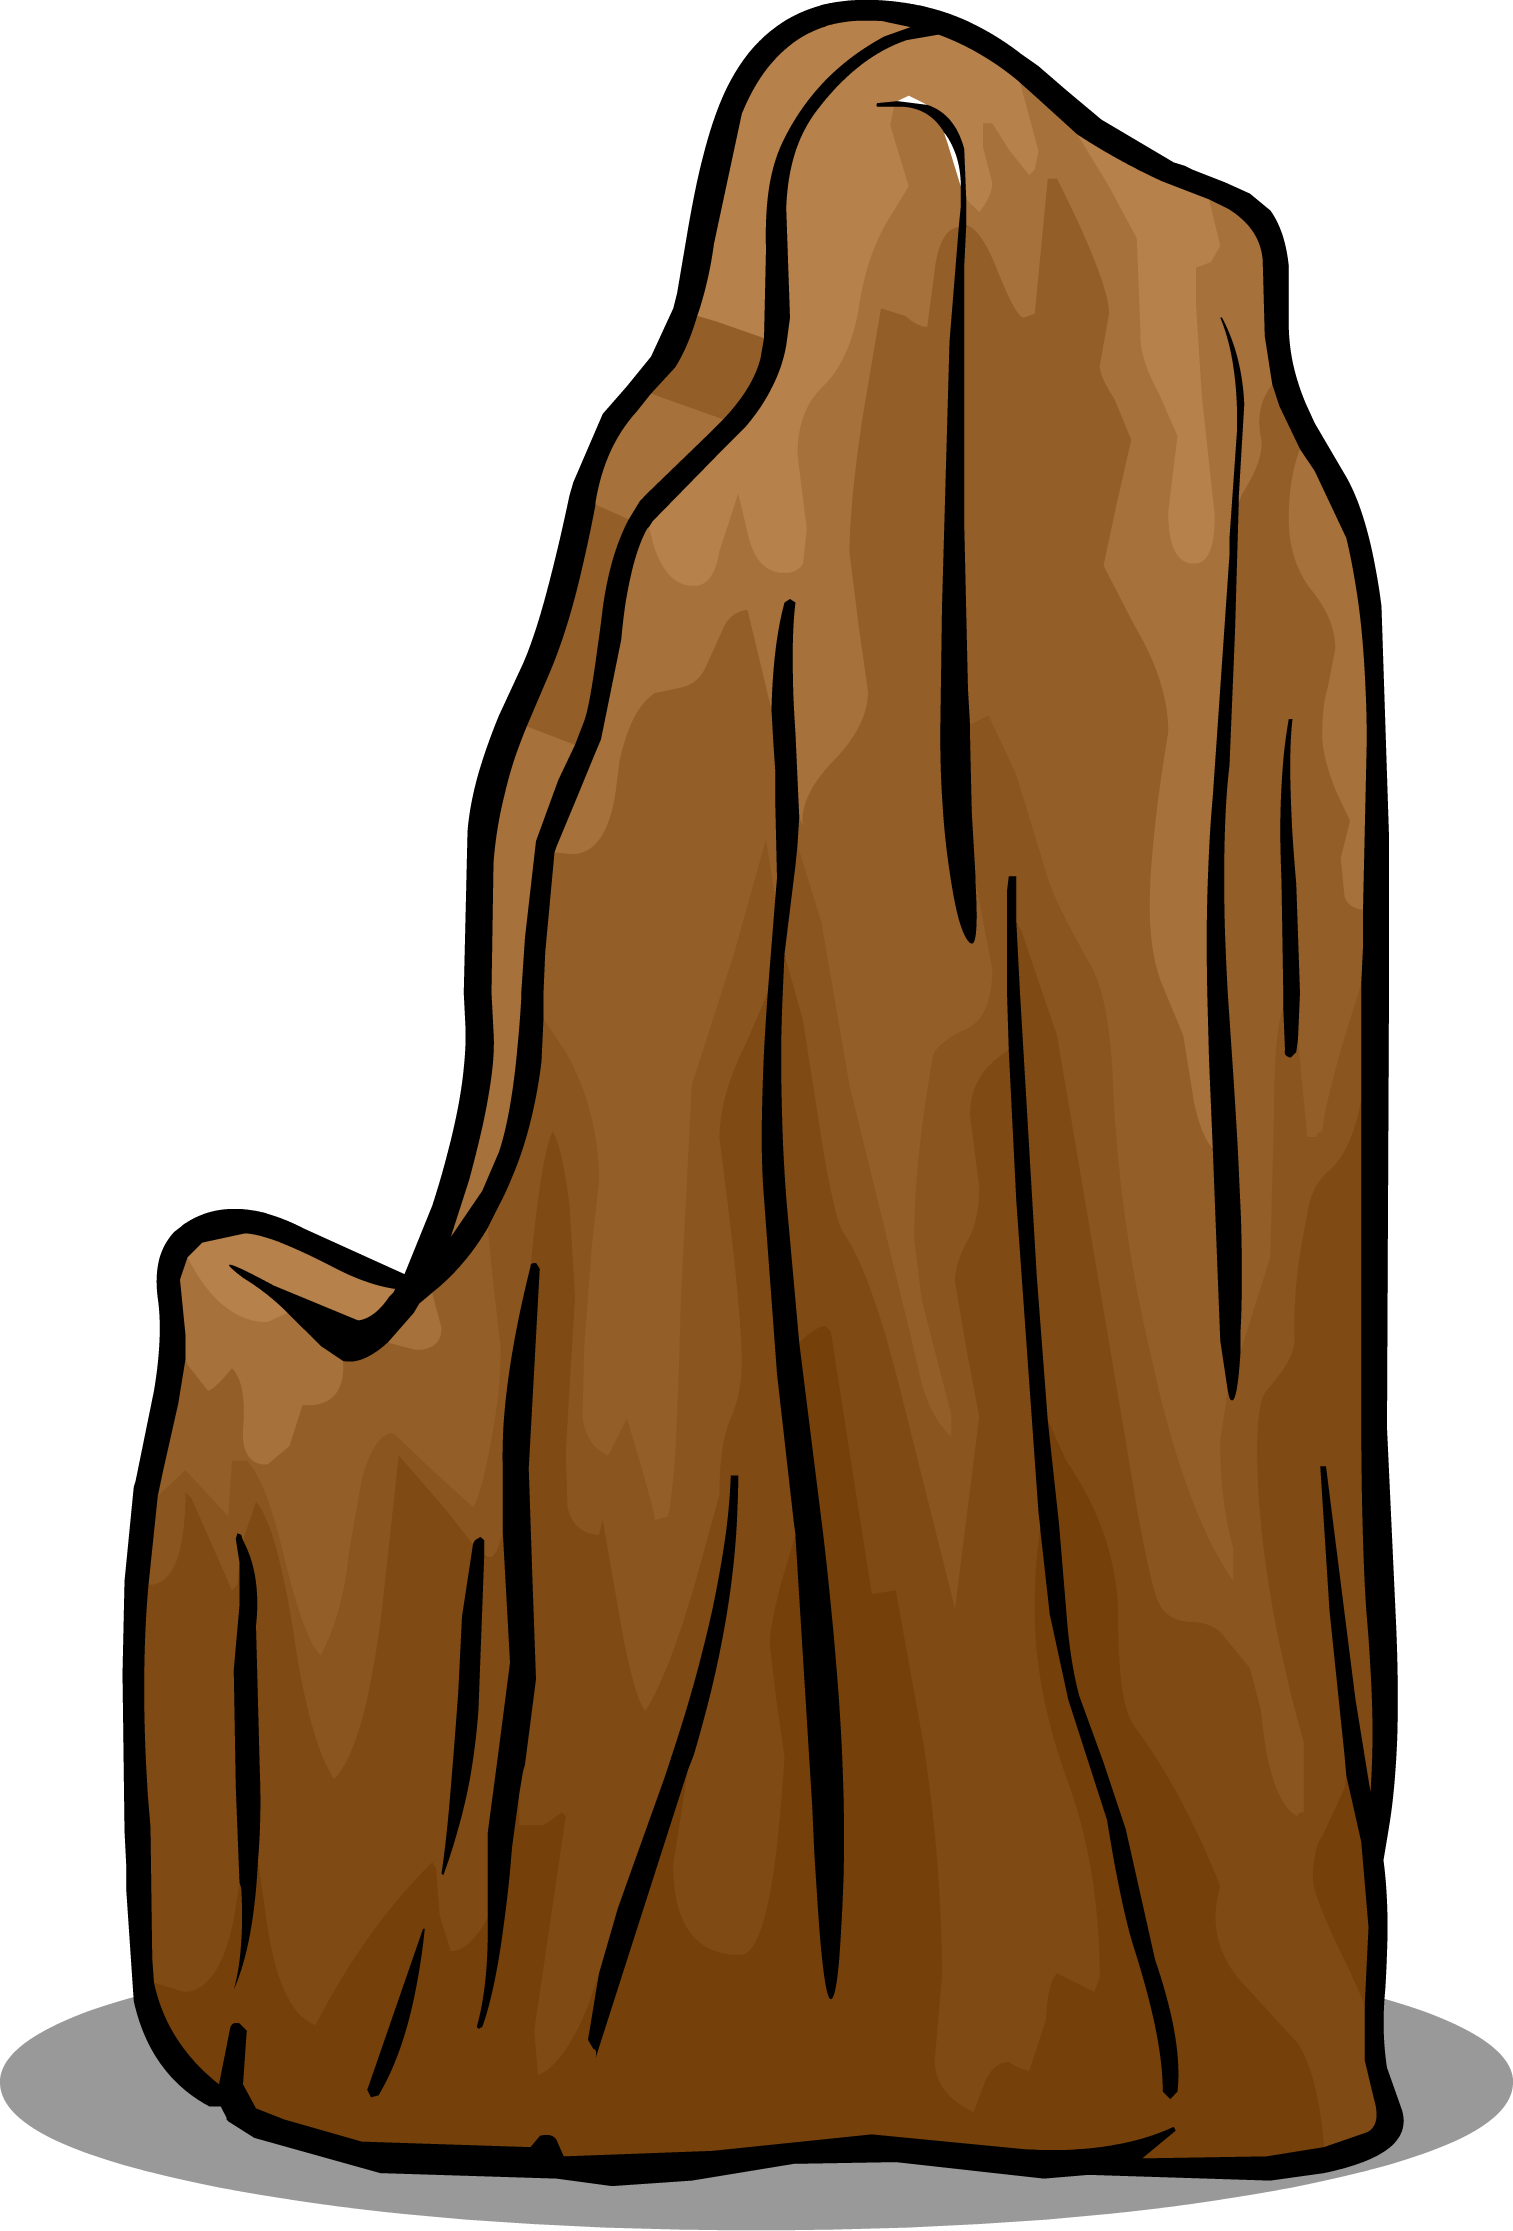 Tree stumps clipart svg library stock Image - Tree Stump Chair sprite 006.png | Club Penguin Wiki | FANDOM ... svg library stock